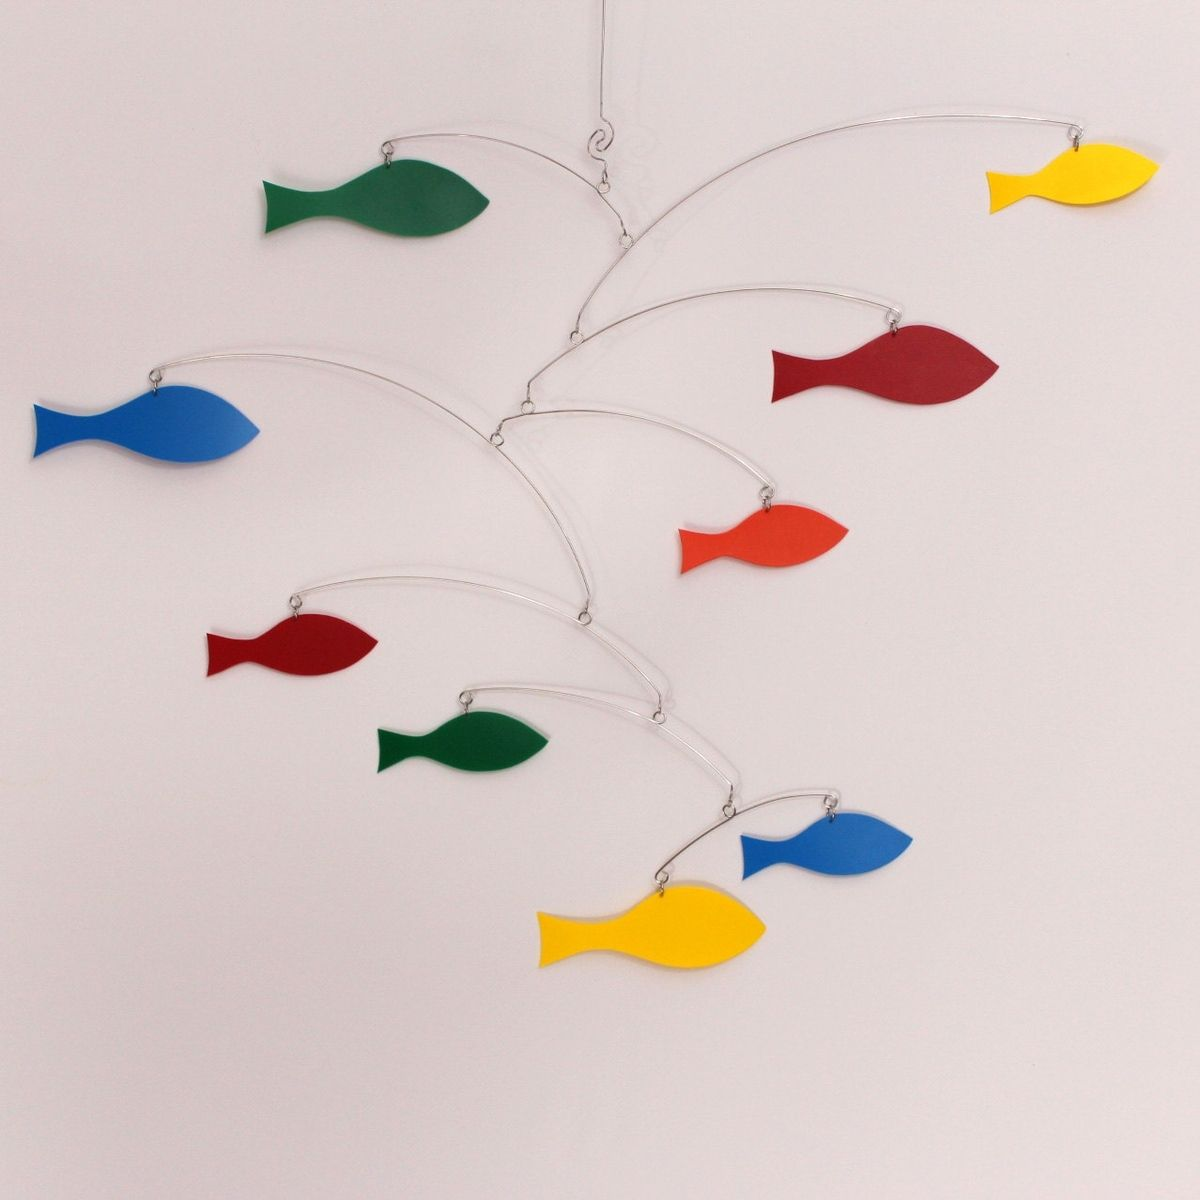 buy a custom made rainbow mobile school of fish kinetic art mobile sculpture by carolyn weir. Black Bedroom Furniture Sets. Home Design Ideas